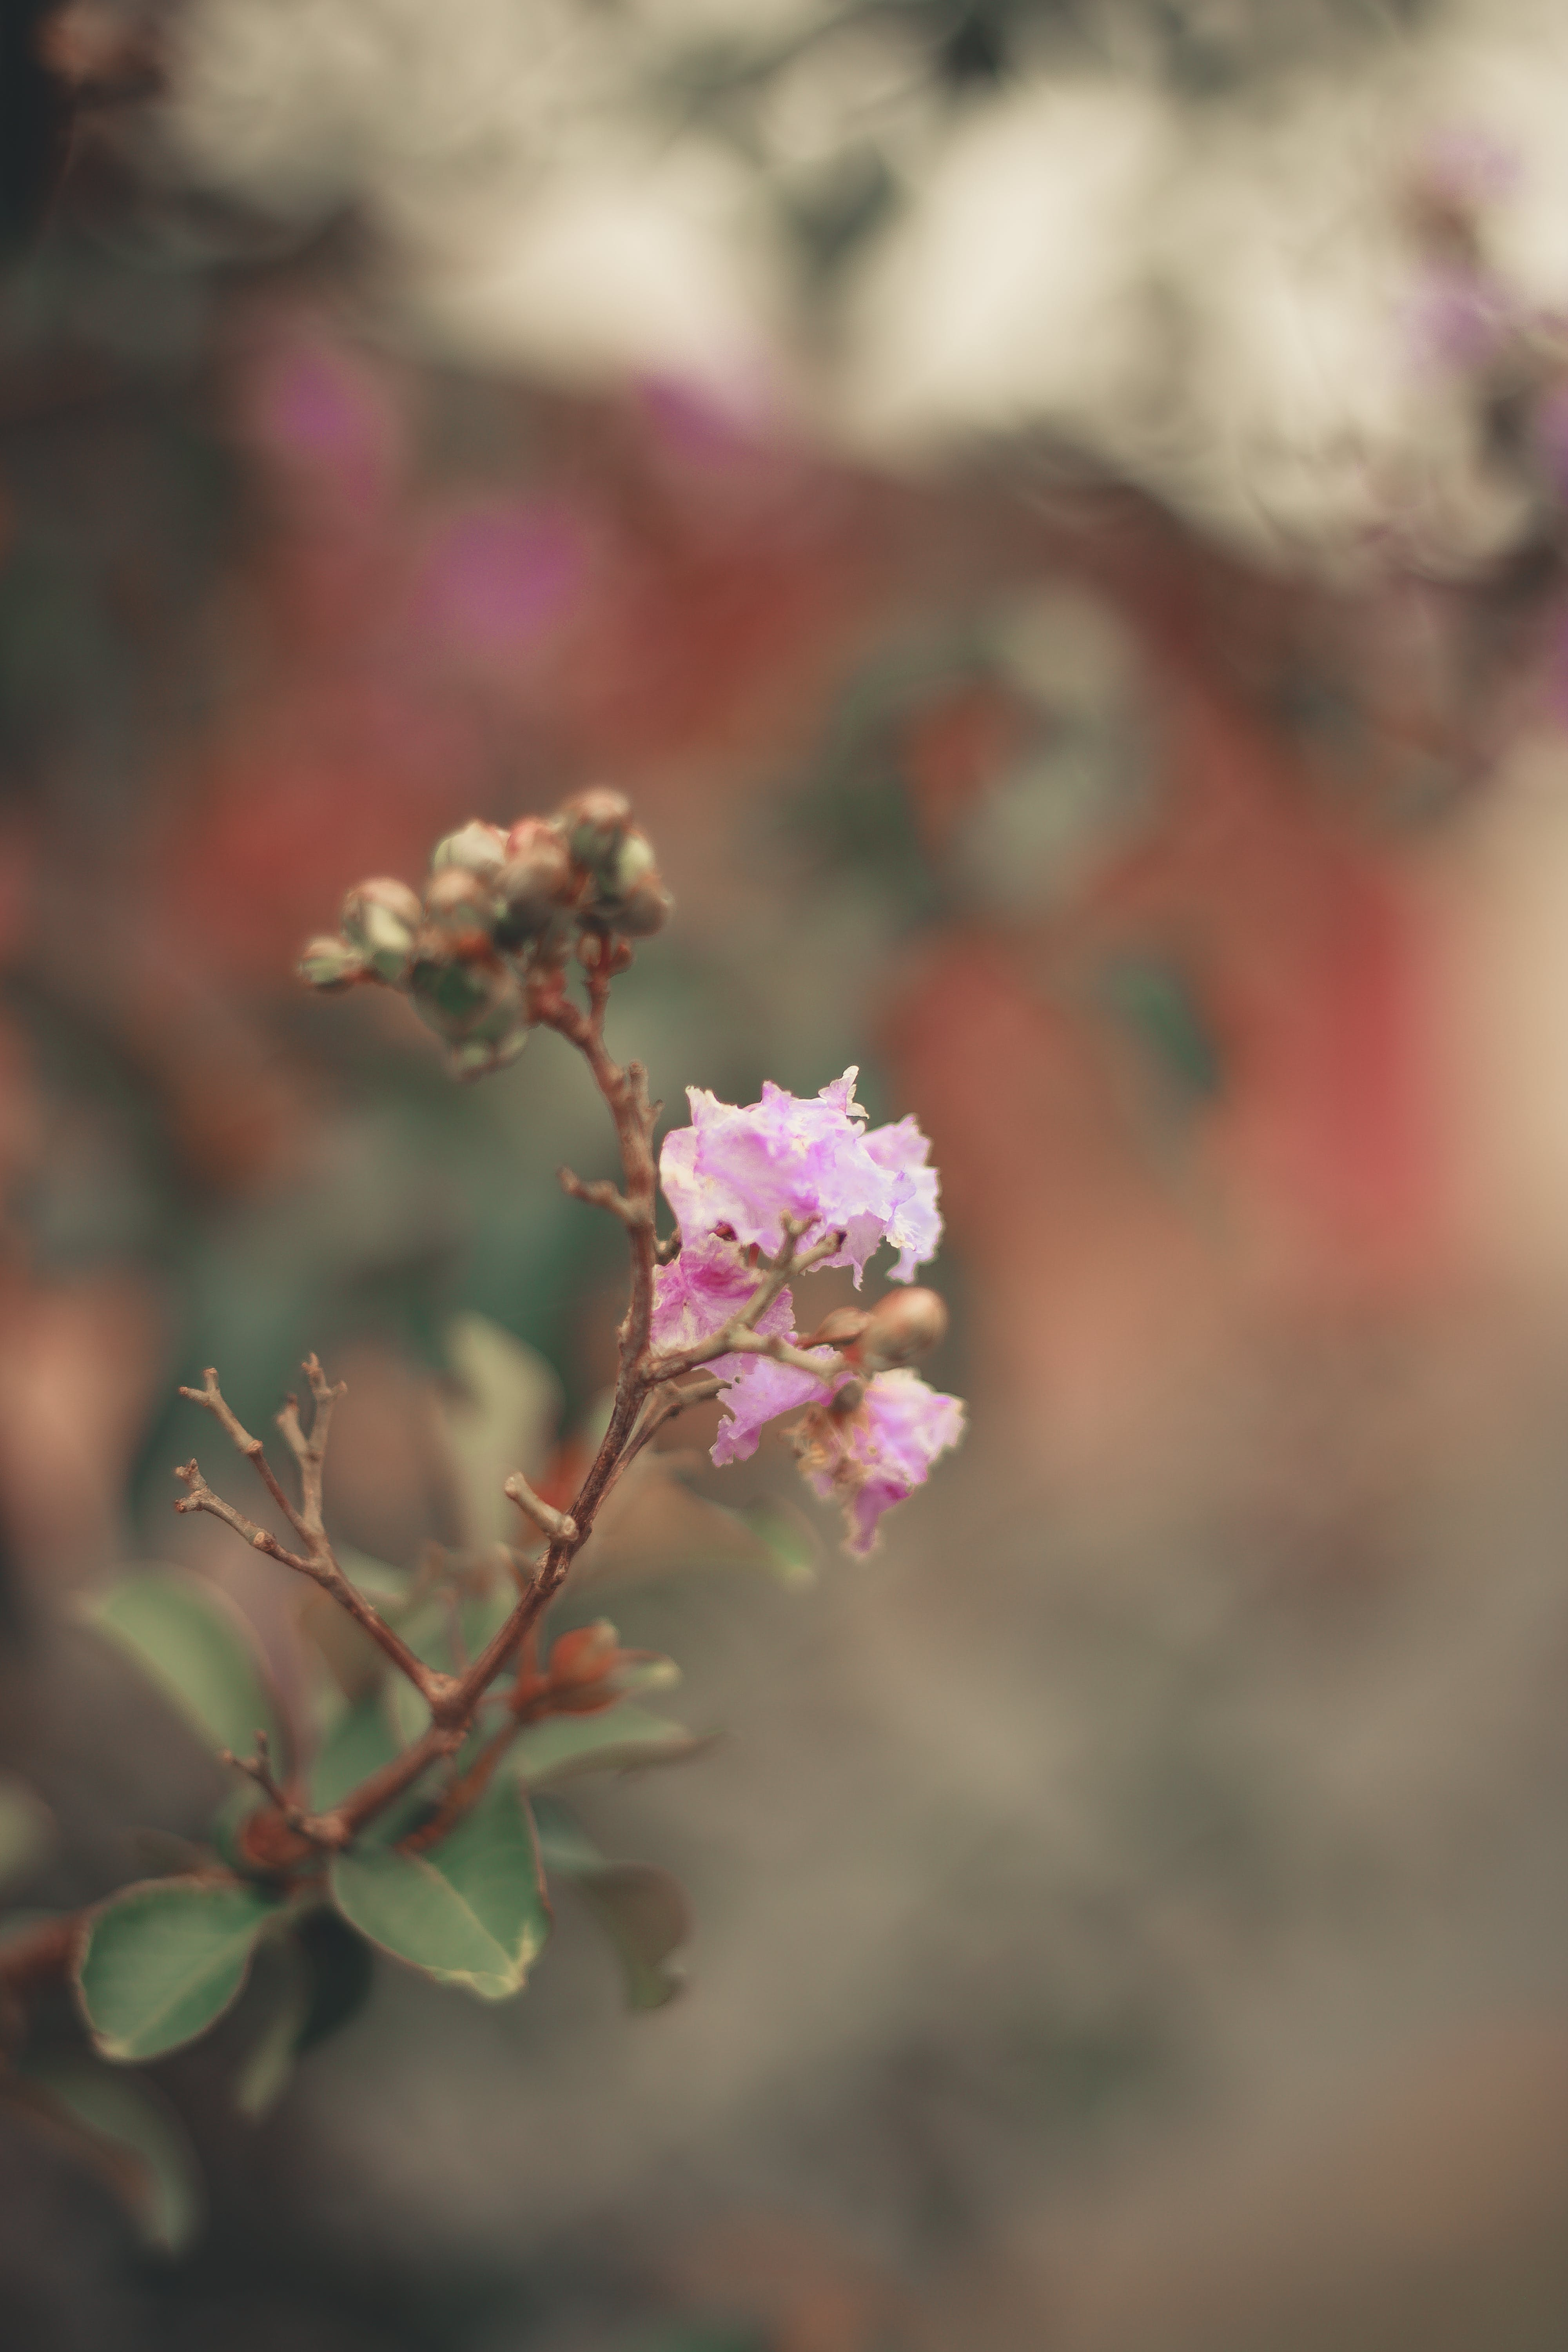 Free stock photo of bloom, blooms, blossom flora, bough